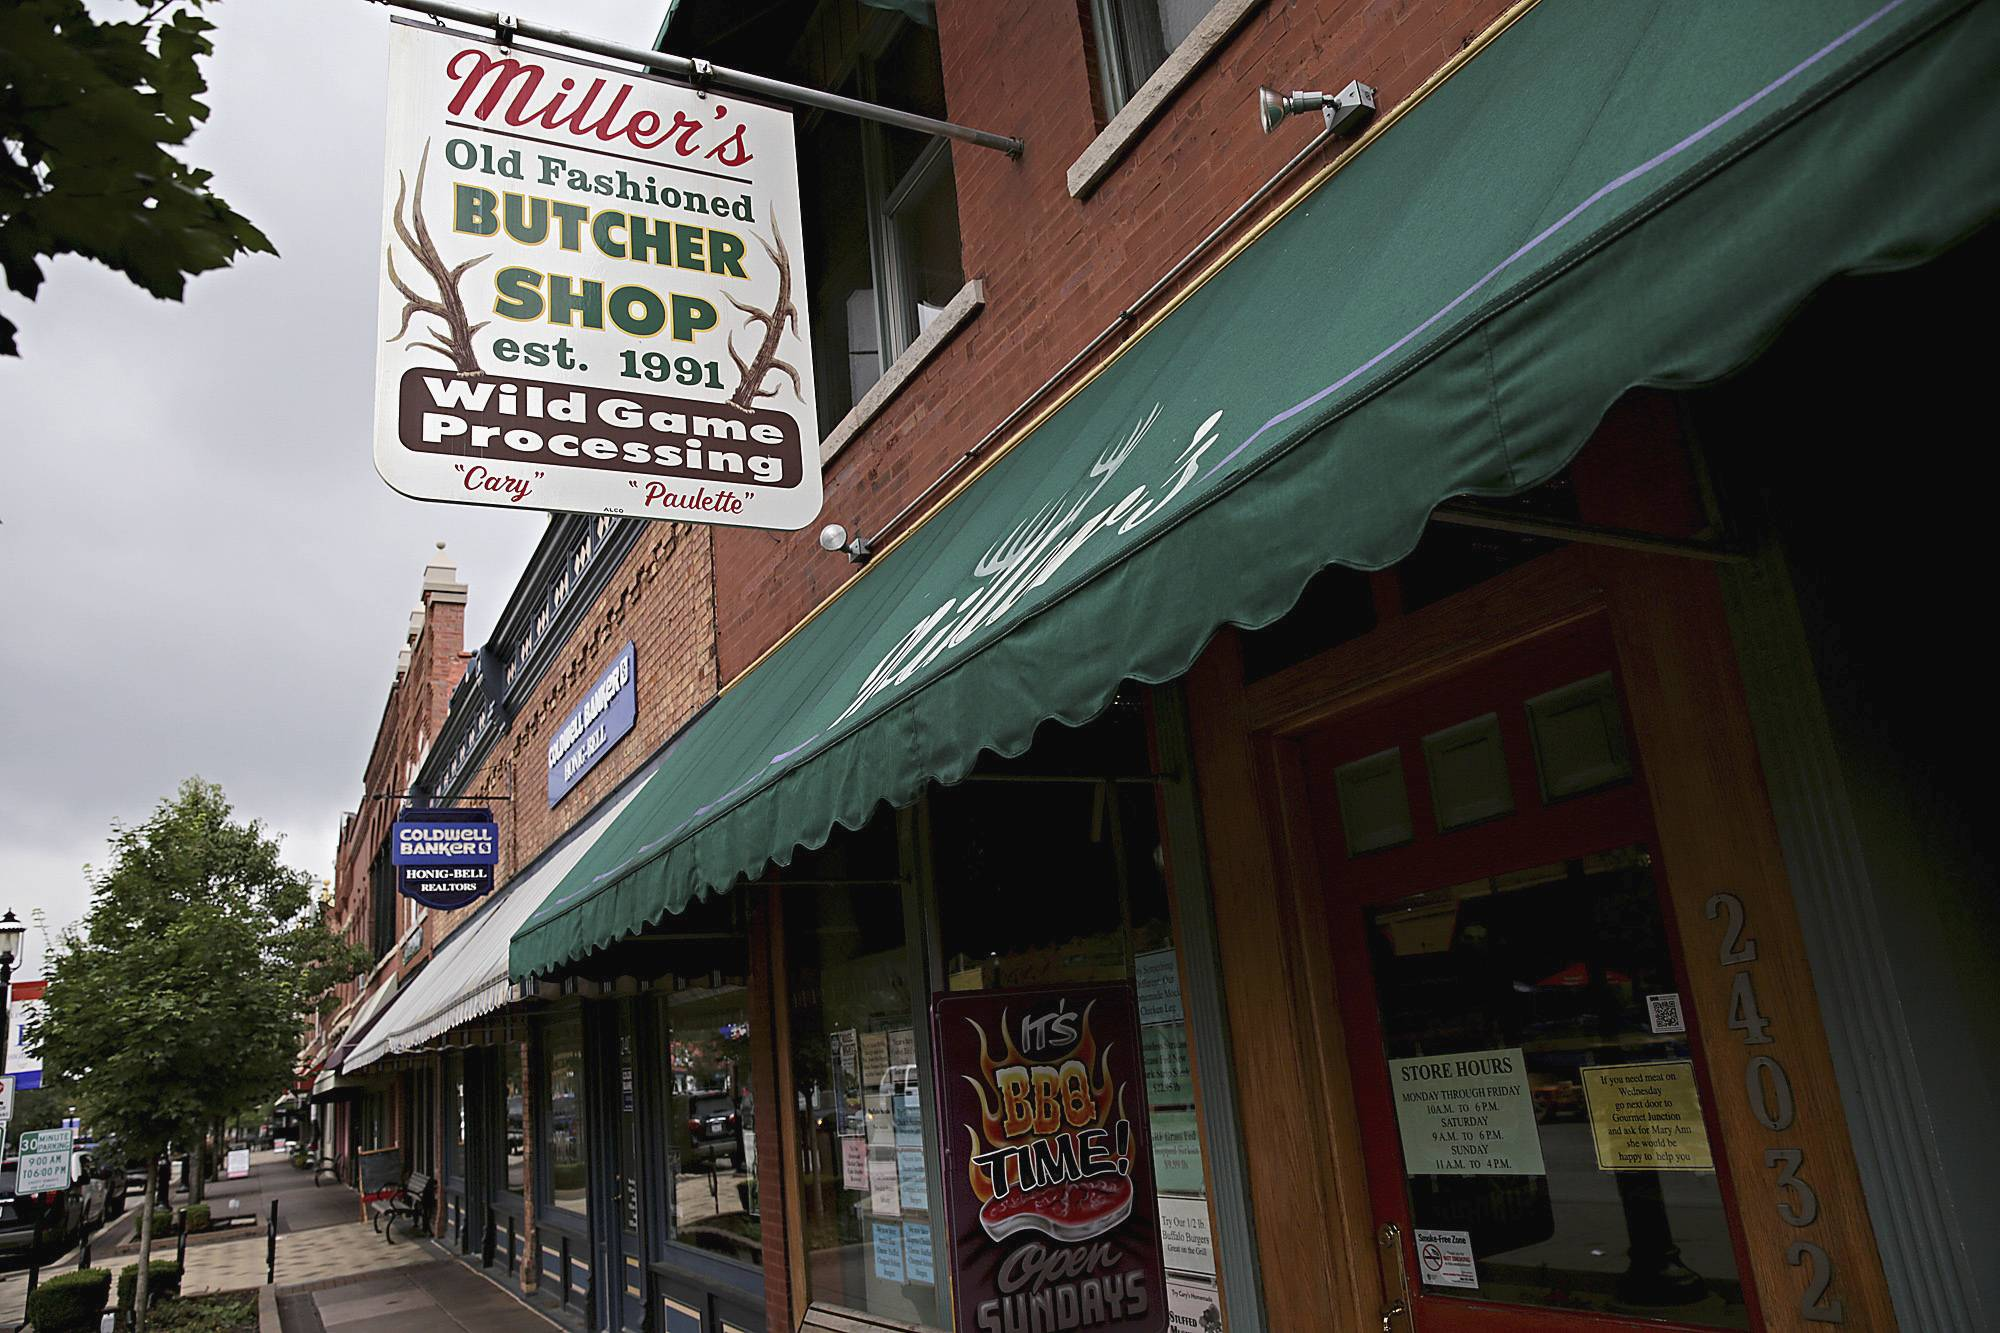 Miller's Old Fashioned Butcher Shop in downtown Plainfield is one of the many downtown Plainfield businesses that are crafty, unique and complement each other.